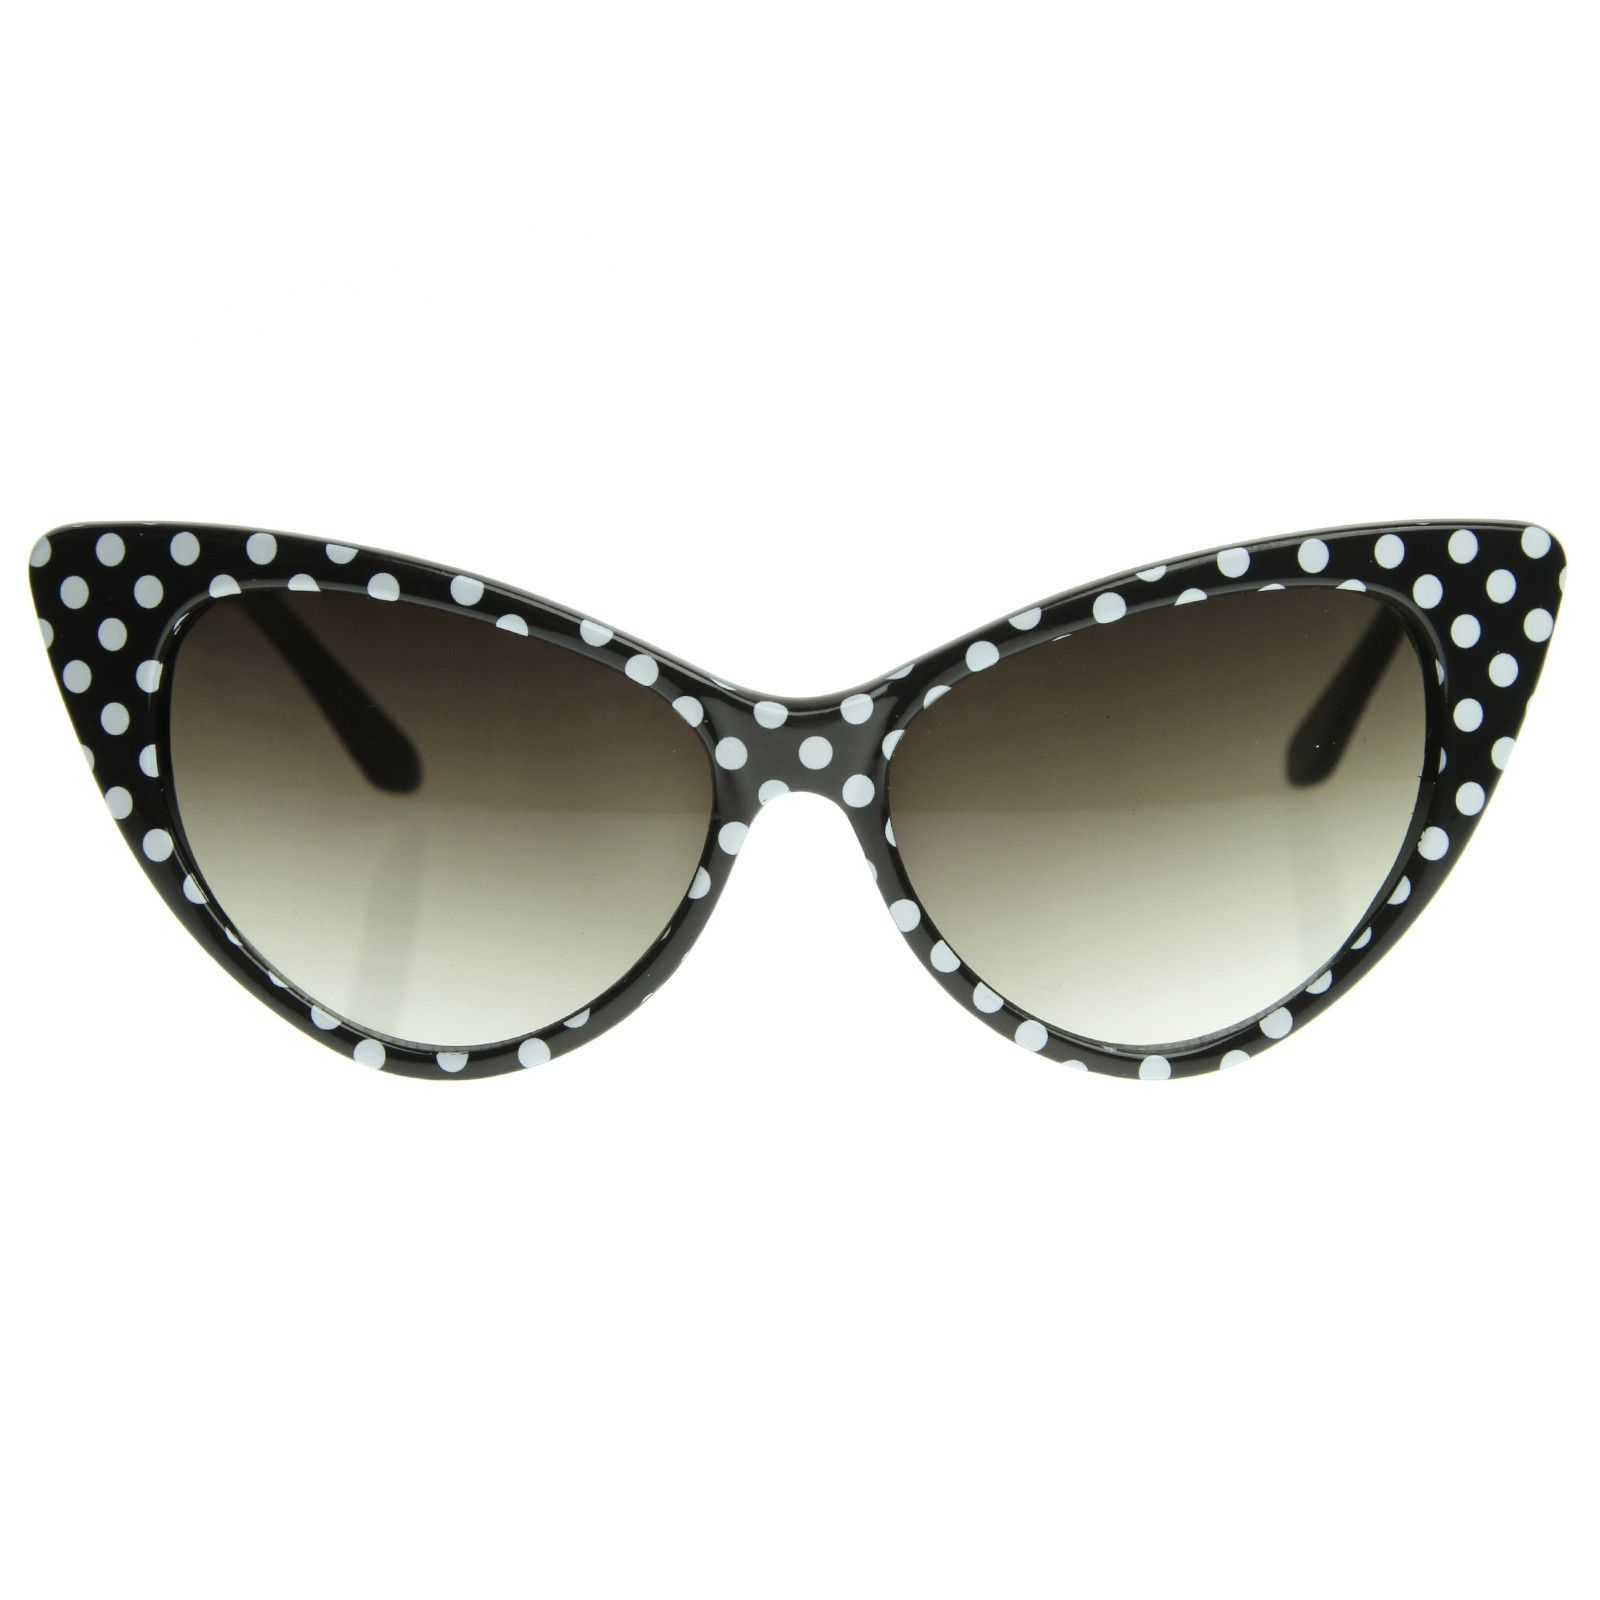 c78067991ddde Retro 1950 s Polka Dot Cat Eye Fashion Sunglasses 8498 from zeroUV --  pleaseeee I ant ♥♥